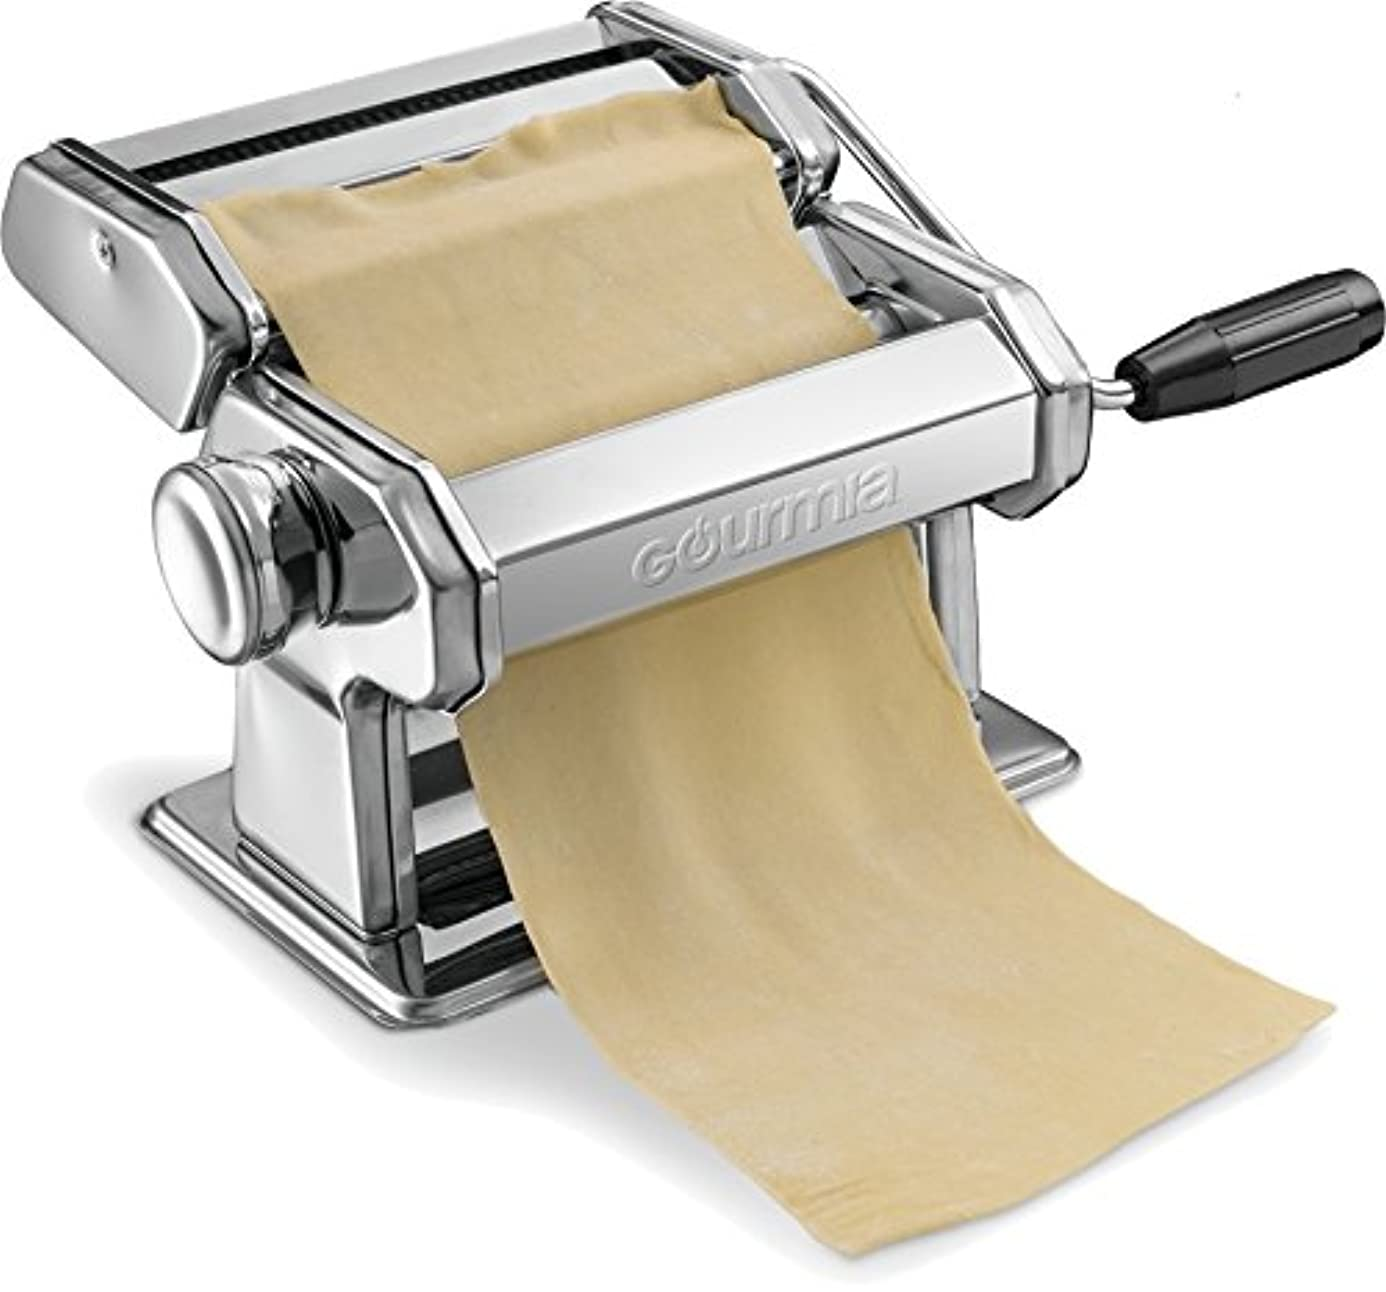 Gourmia GPM9980 – Pasta Maker, Roller and Cutter - Manual Hand Crank – Slices Dough into Spaghetti and Fettuccine – Stainless Steel Surface and Chrome Plated Parts - 150mm imi3997386